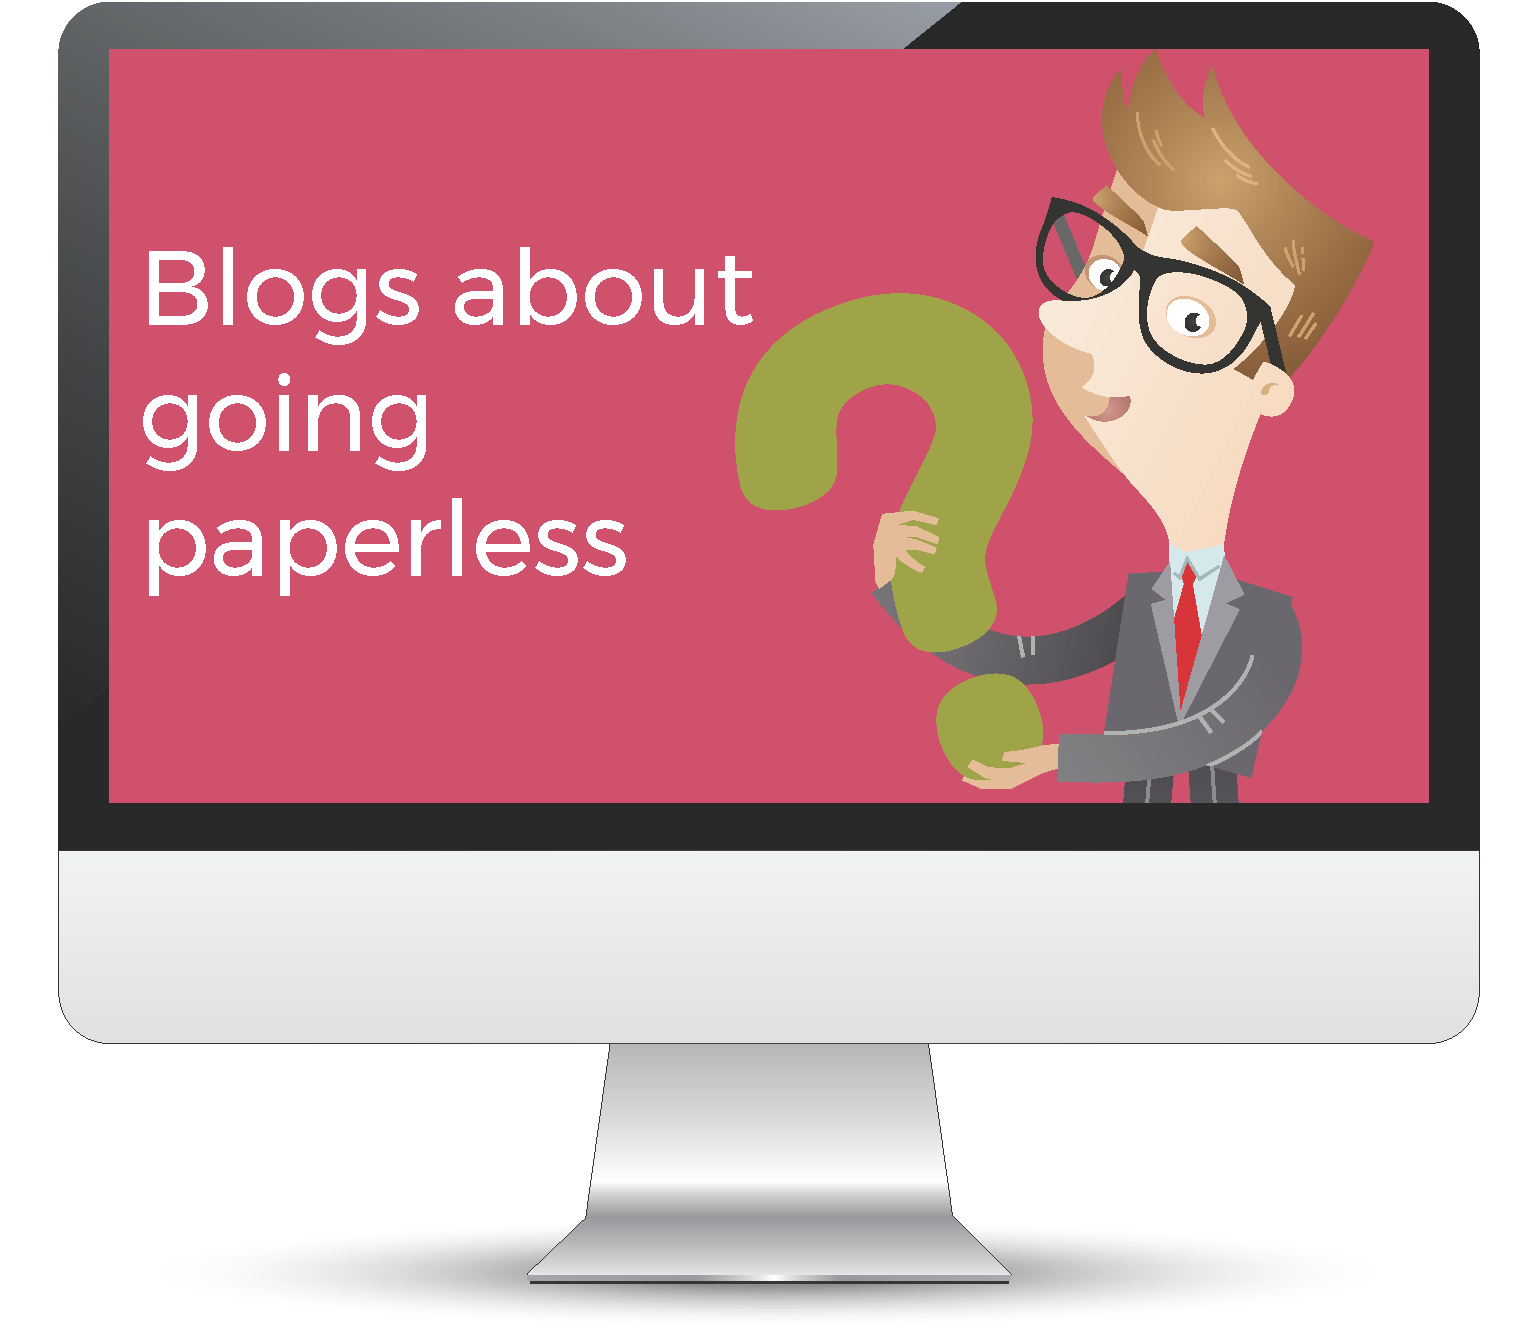 Paperless blogs